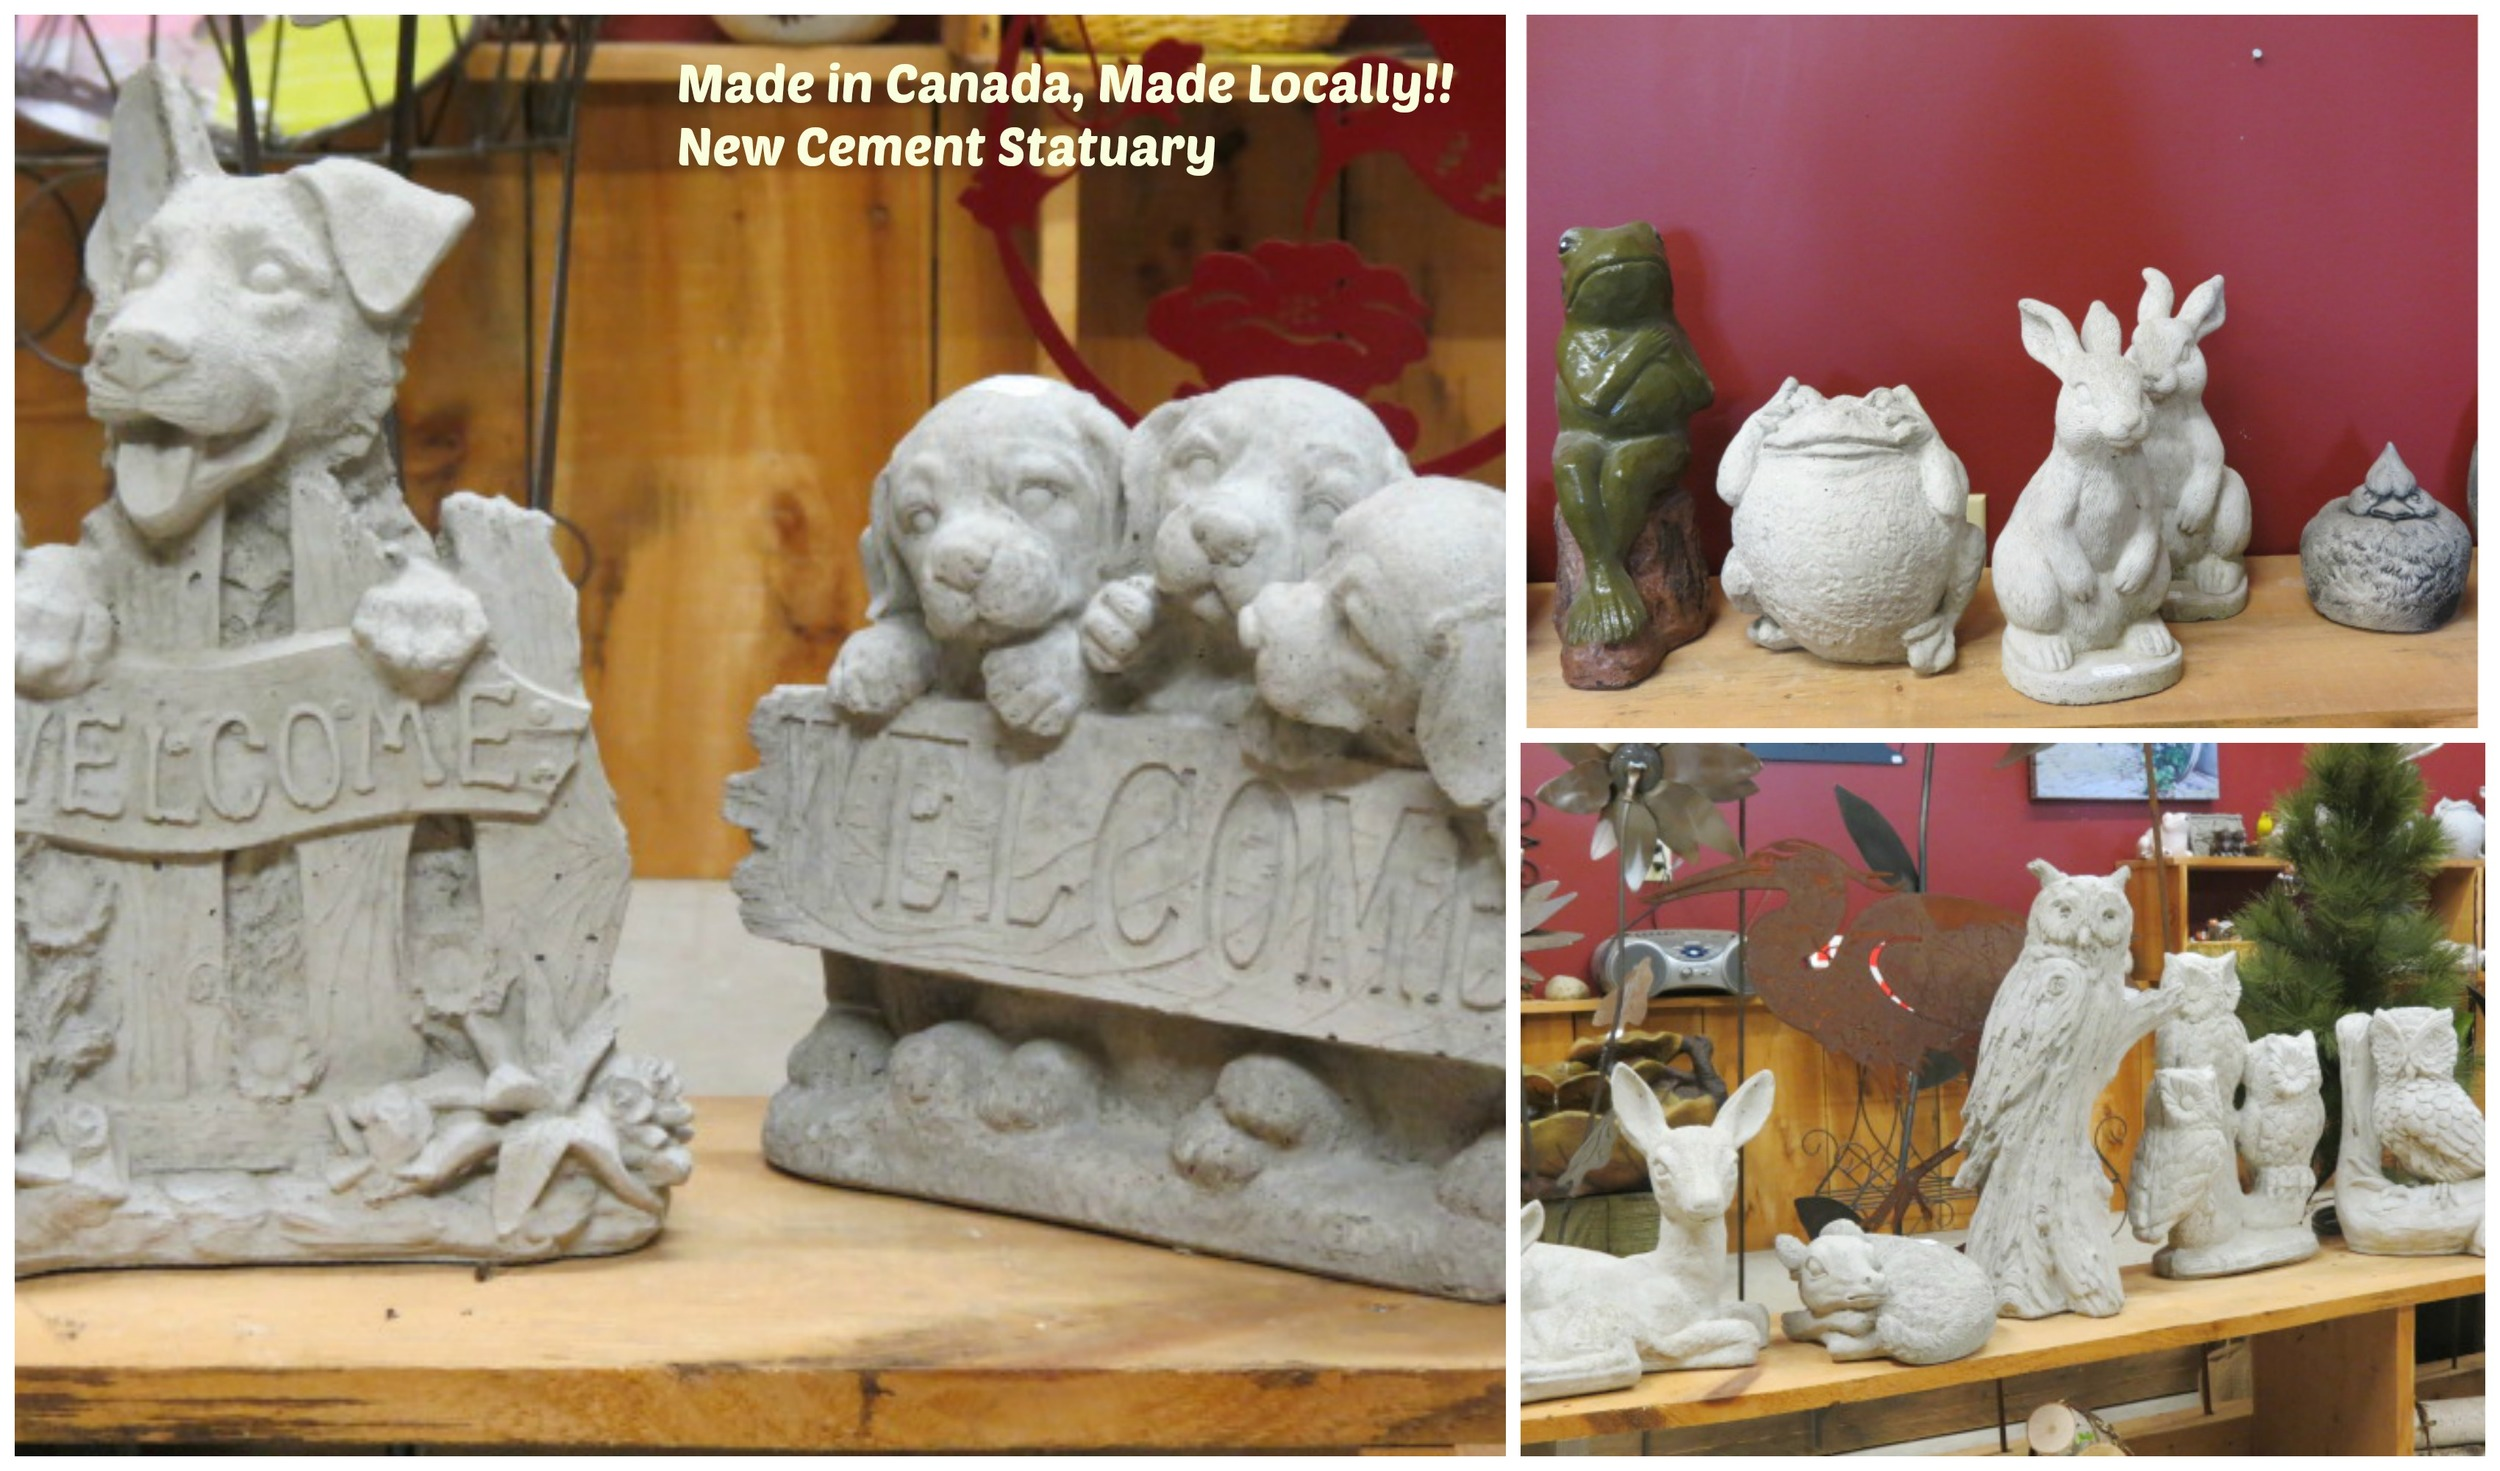 Just-arrived Cement Statuary